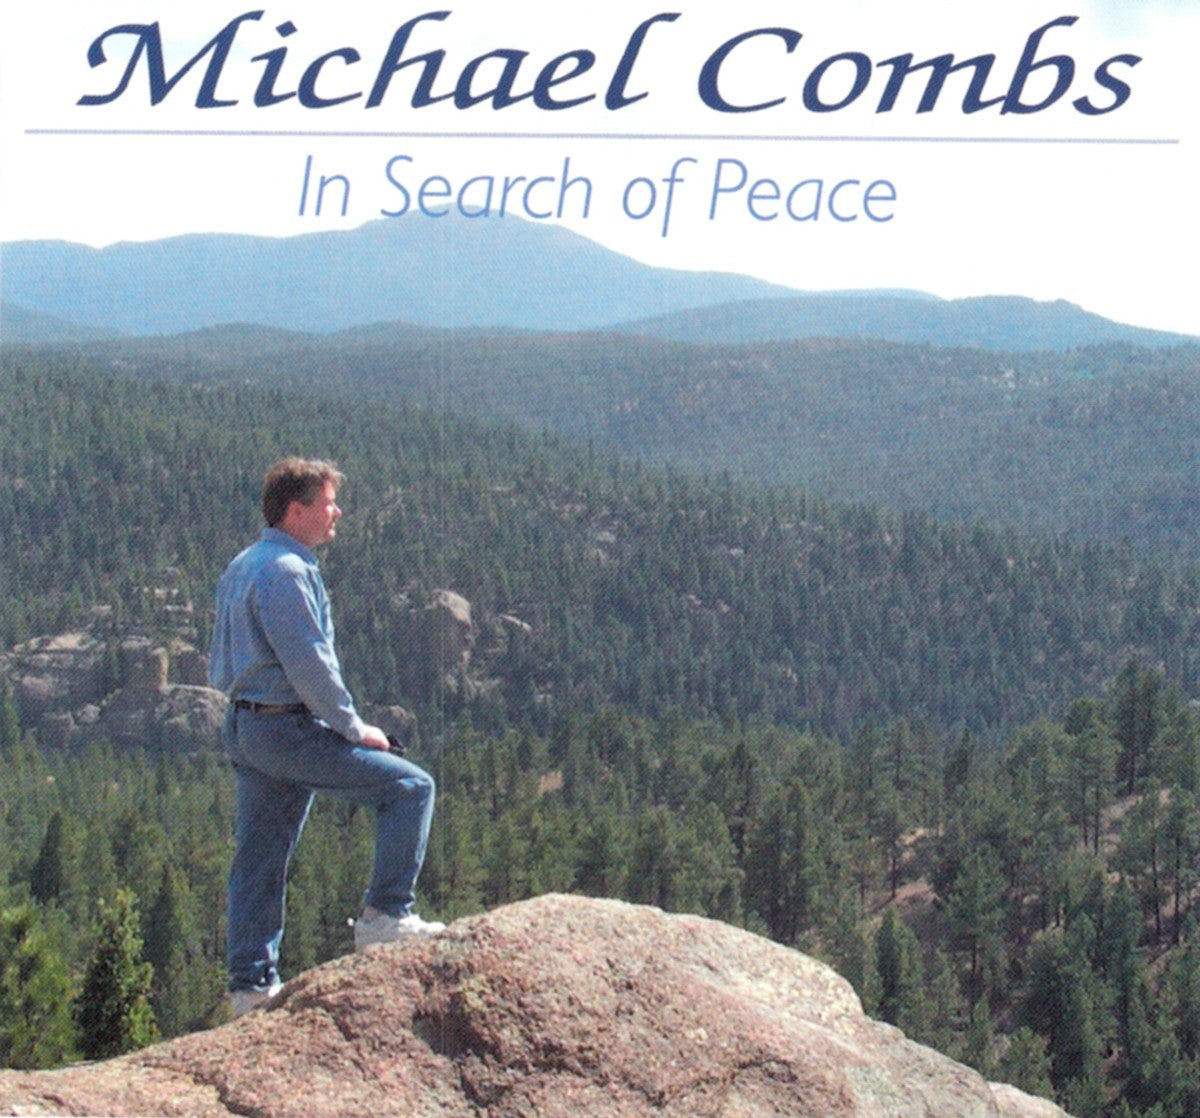 In Search of Peace Music Album